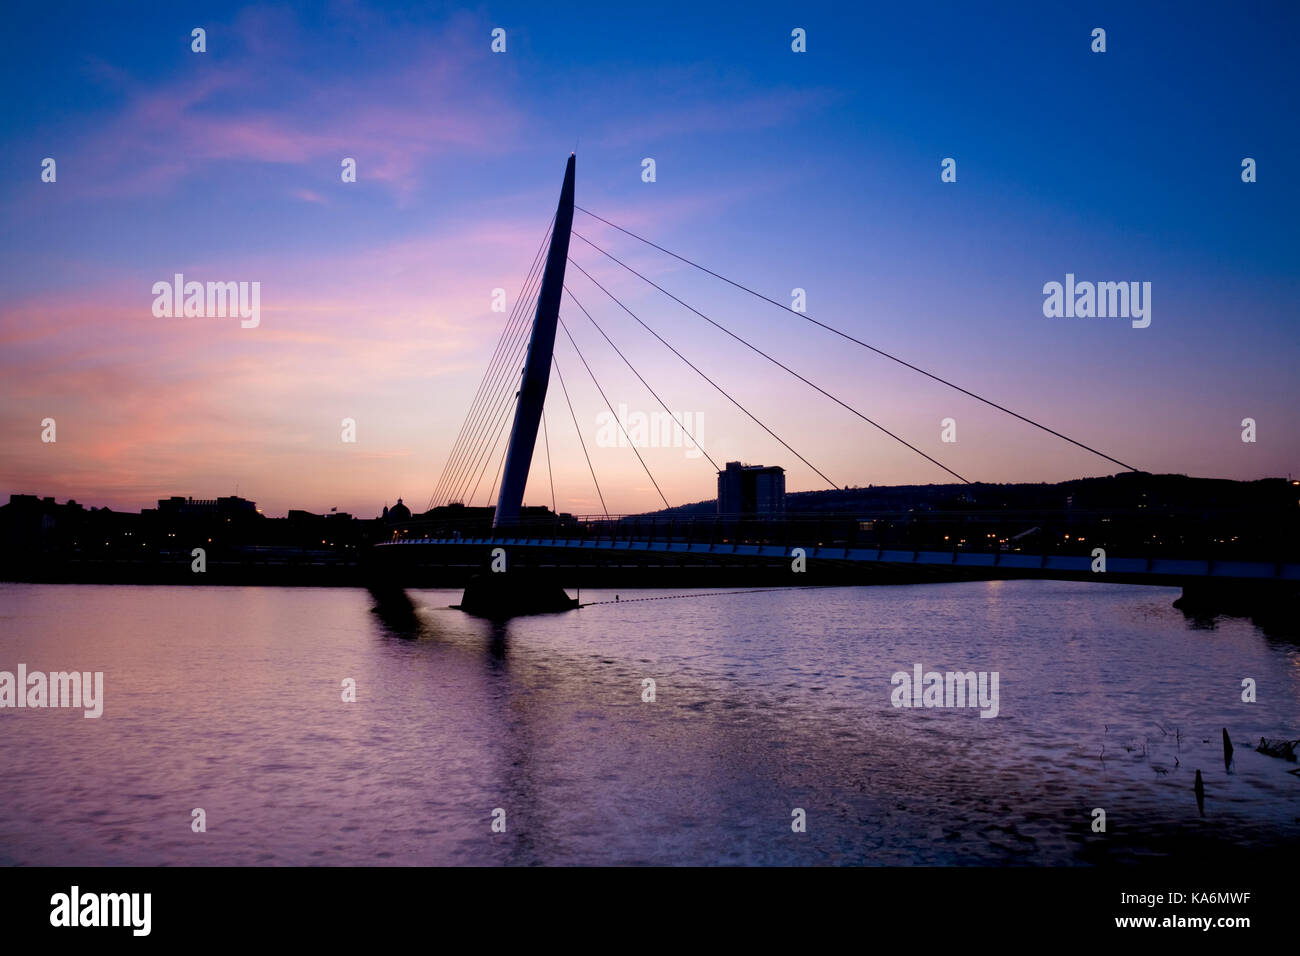 Silhouette of 'Sail Bridge' in Swansea, Wales, UK. - Stock Image